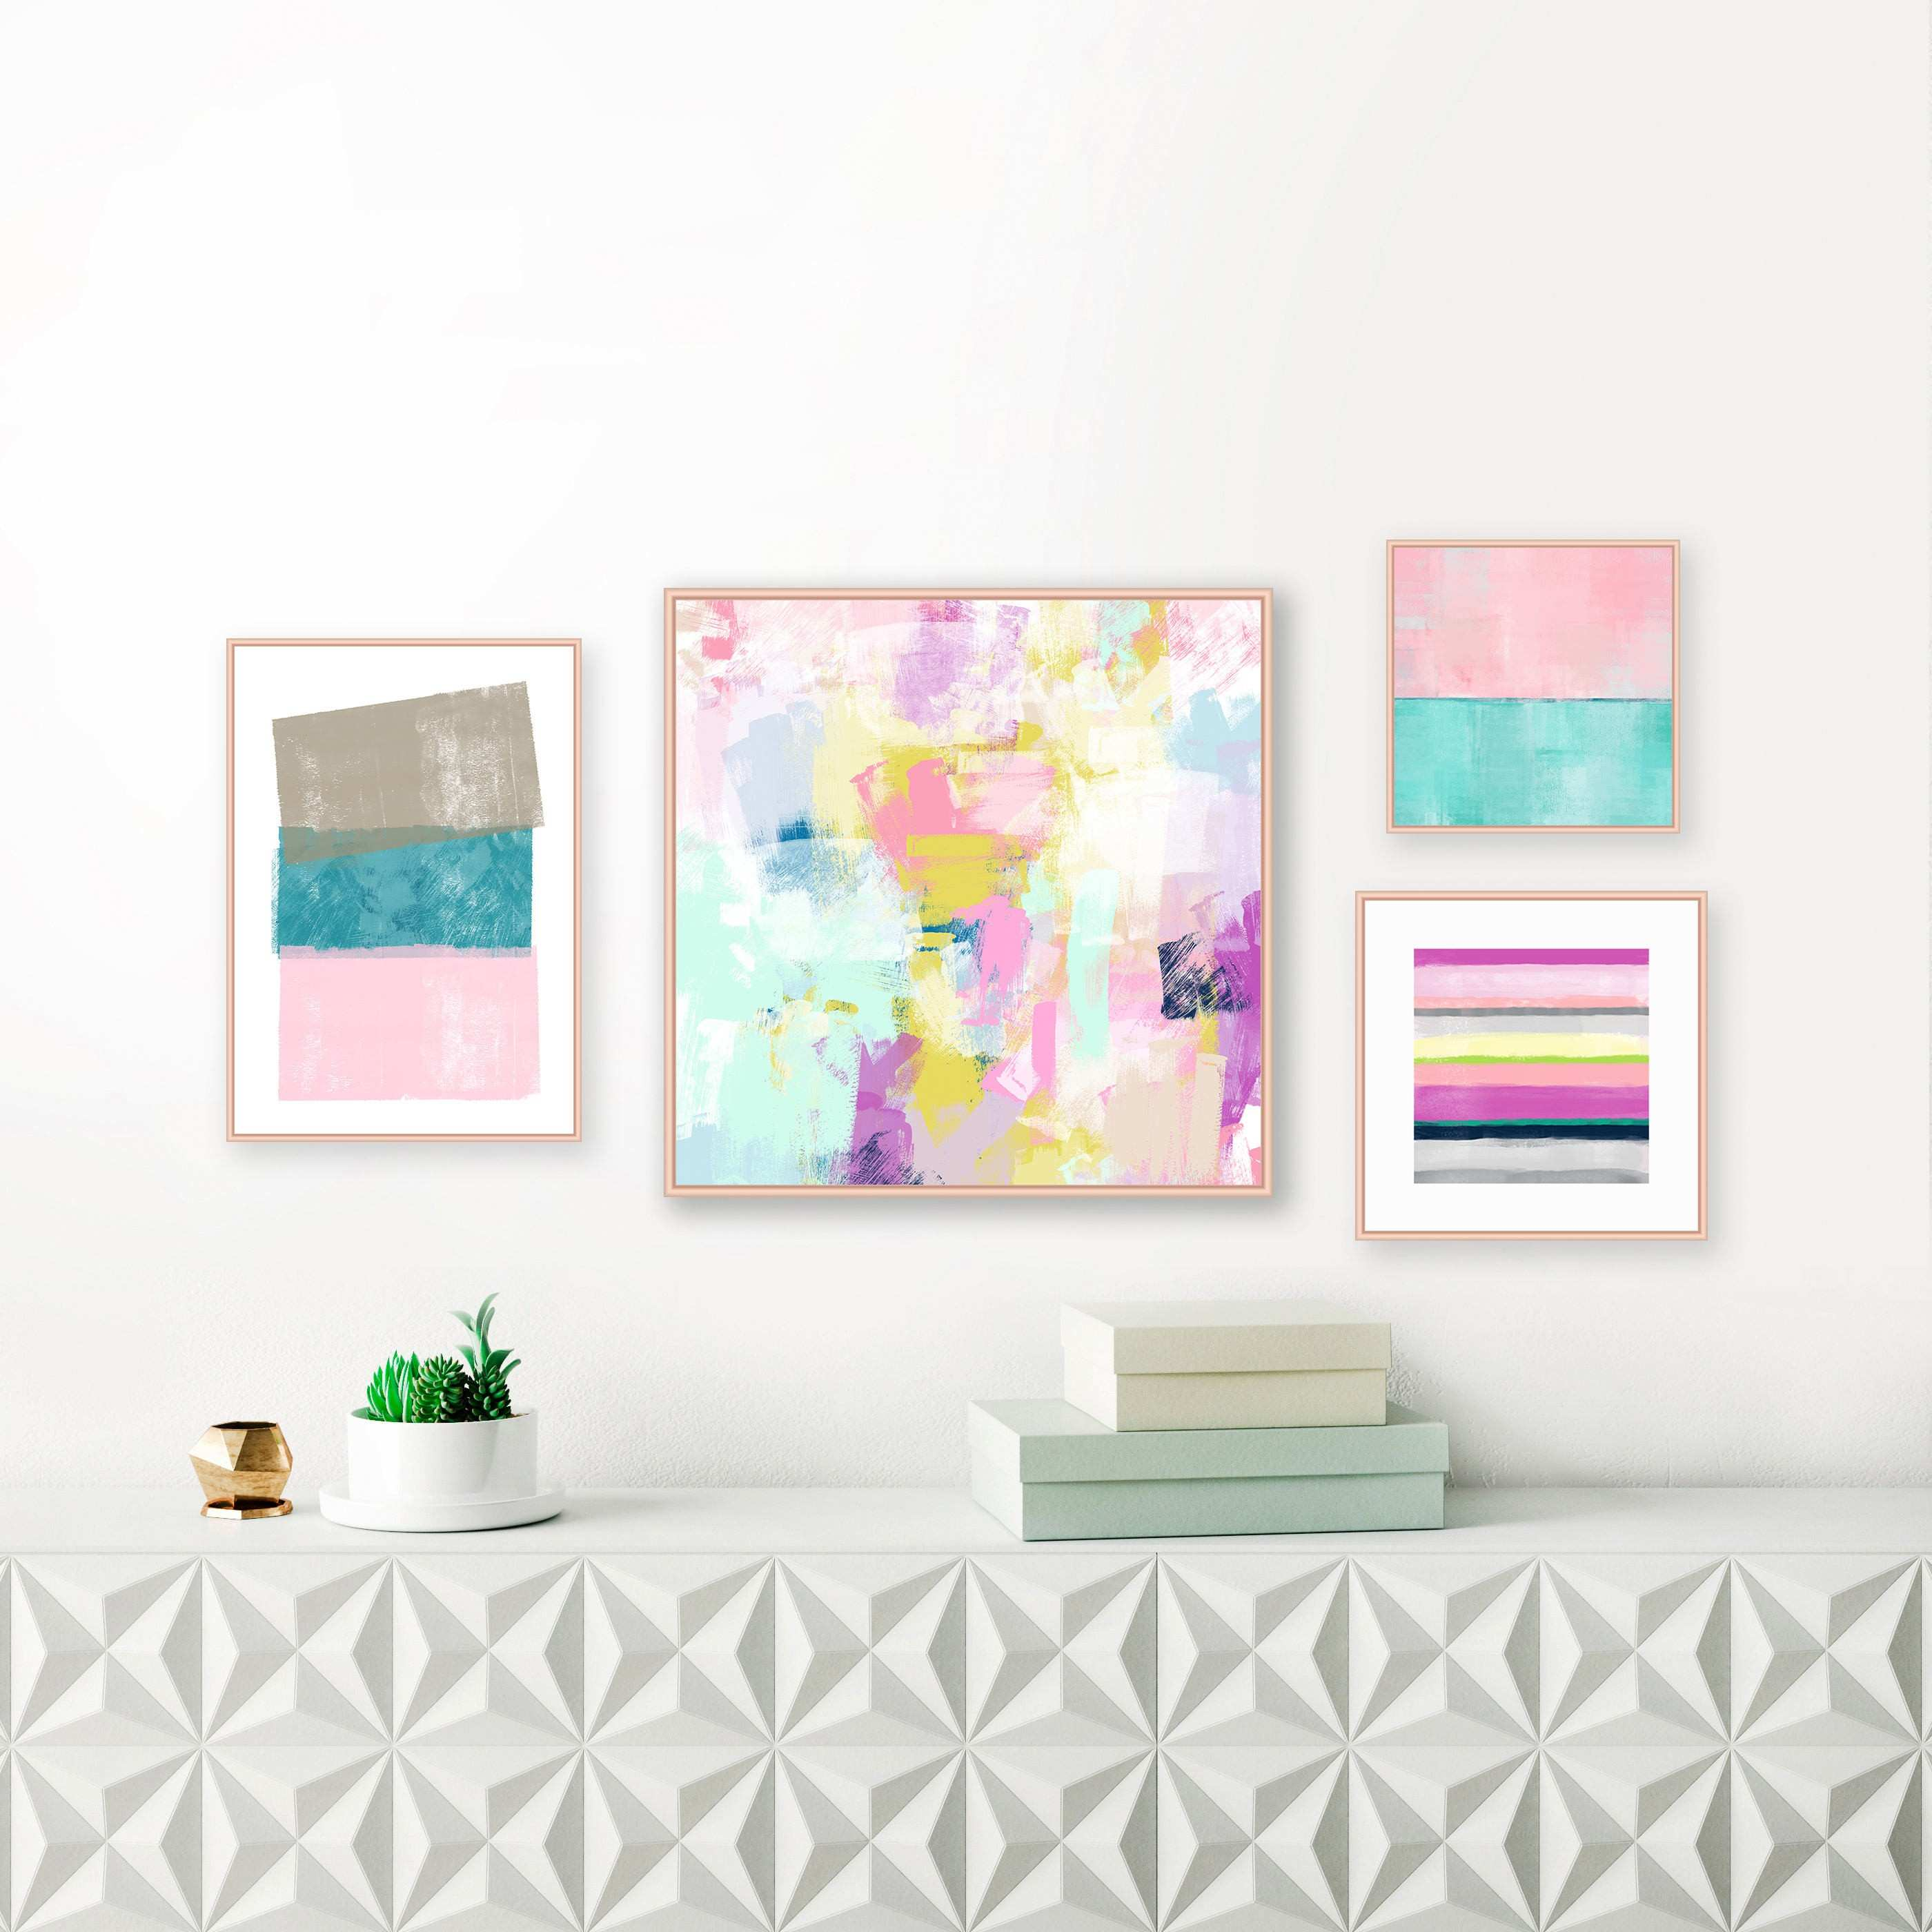 A Set of 4 Gallery Wall Art Prints Pastel and Jewel Tone Paintings